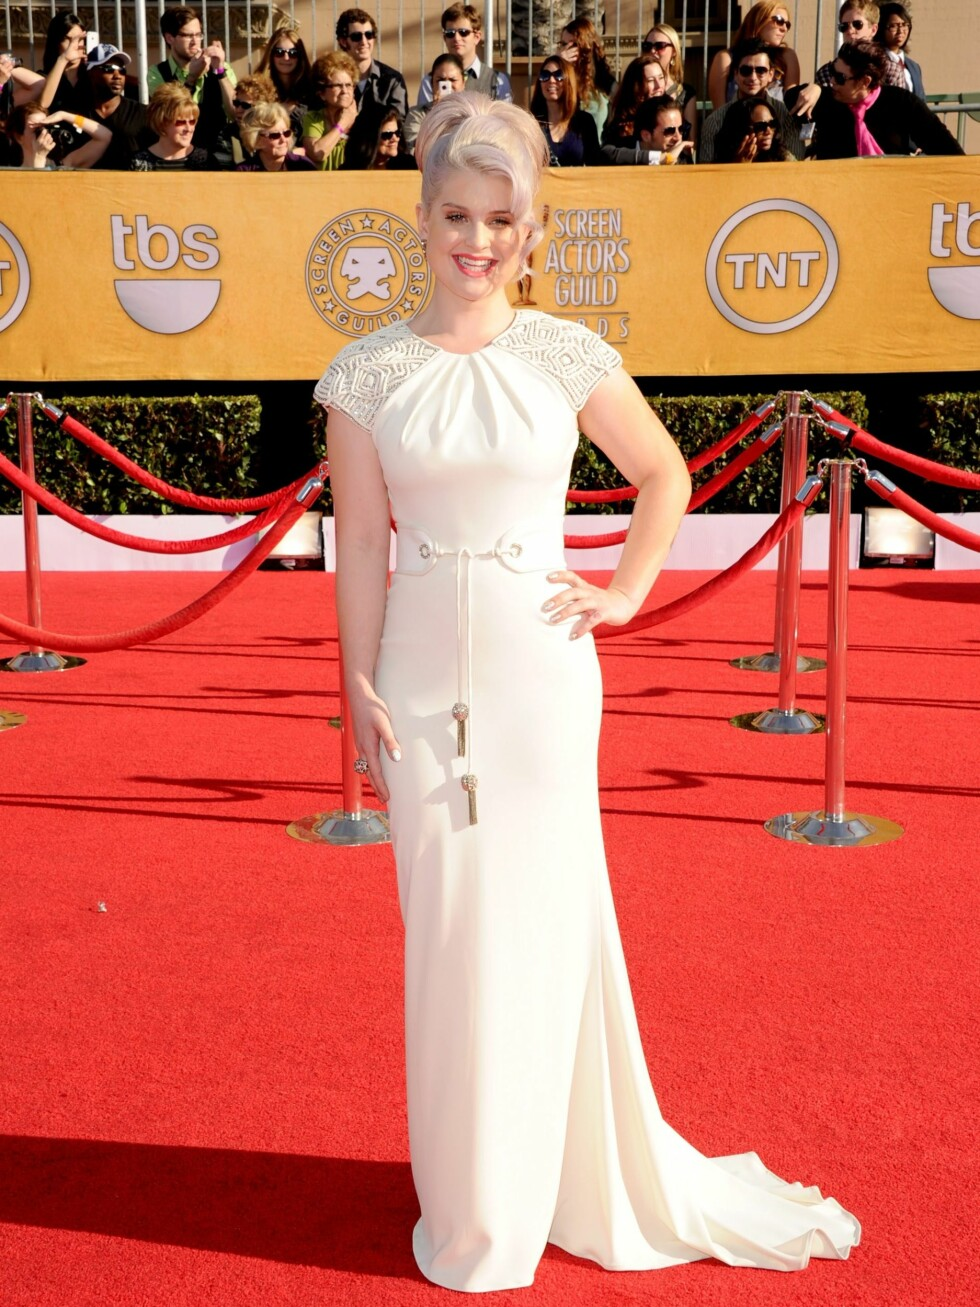 LOS ANGELES, CA - JANUARY 29:  TV personality Kelly Osbourne arrives at the 18th Annual Screen Actors Guild Awards at The Shrine Auditorium on January 29, 2012 in Los Angeles, California.  (Photo by Jason Merritt/Getty Images) By: All Over Press / Getty Images CODE: GE01X8 Foto: All Over Press